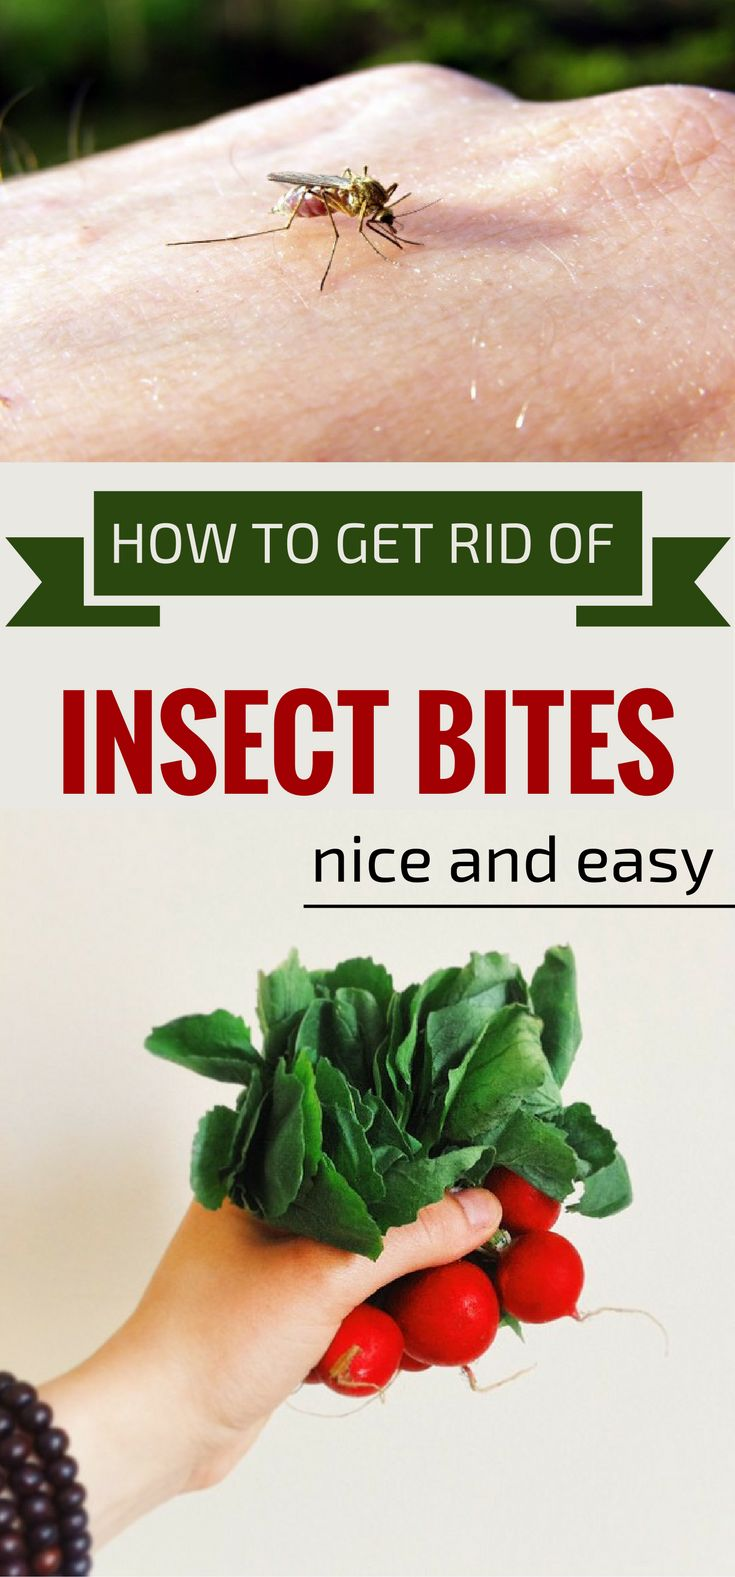 how to get rid of infected insect bites